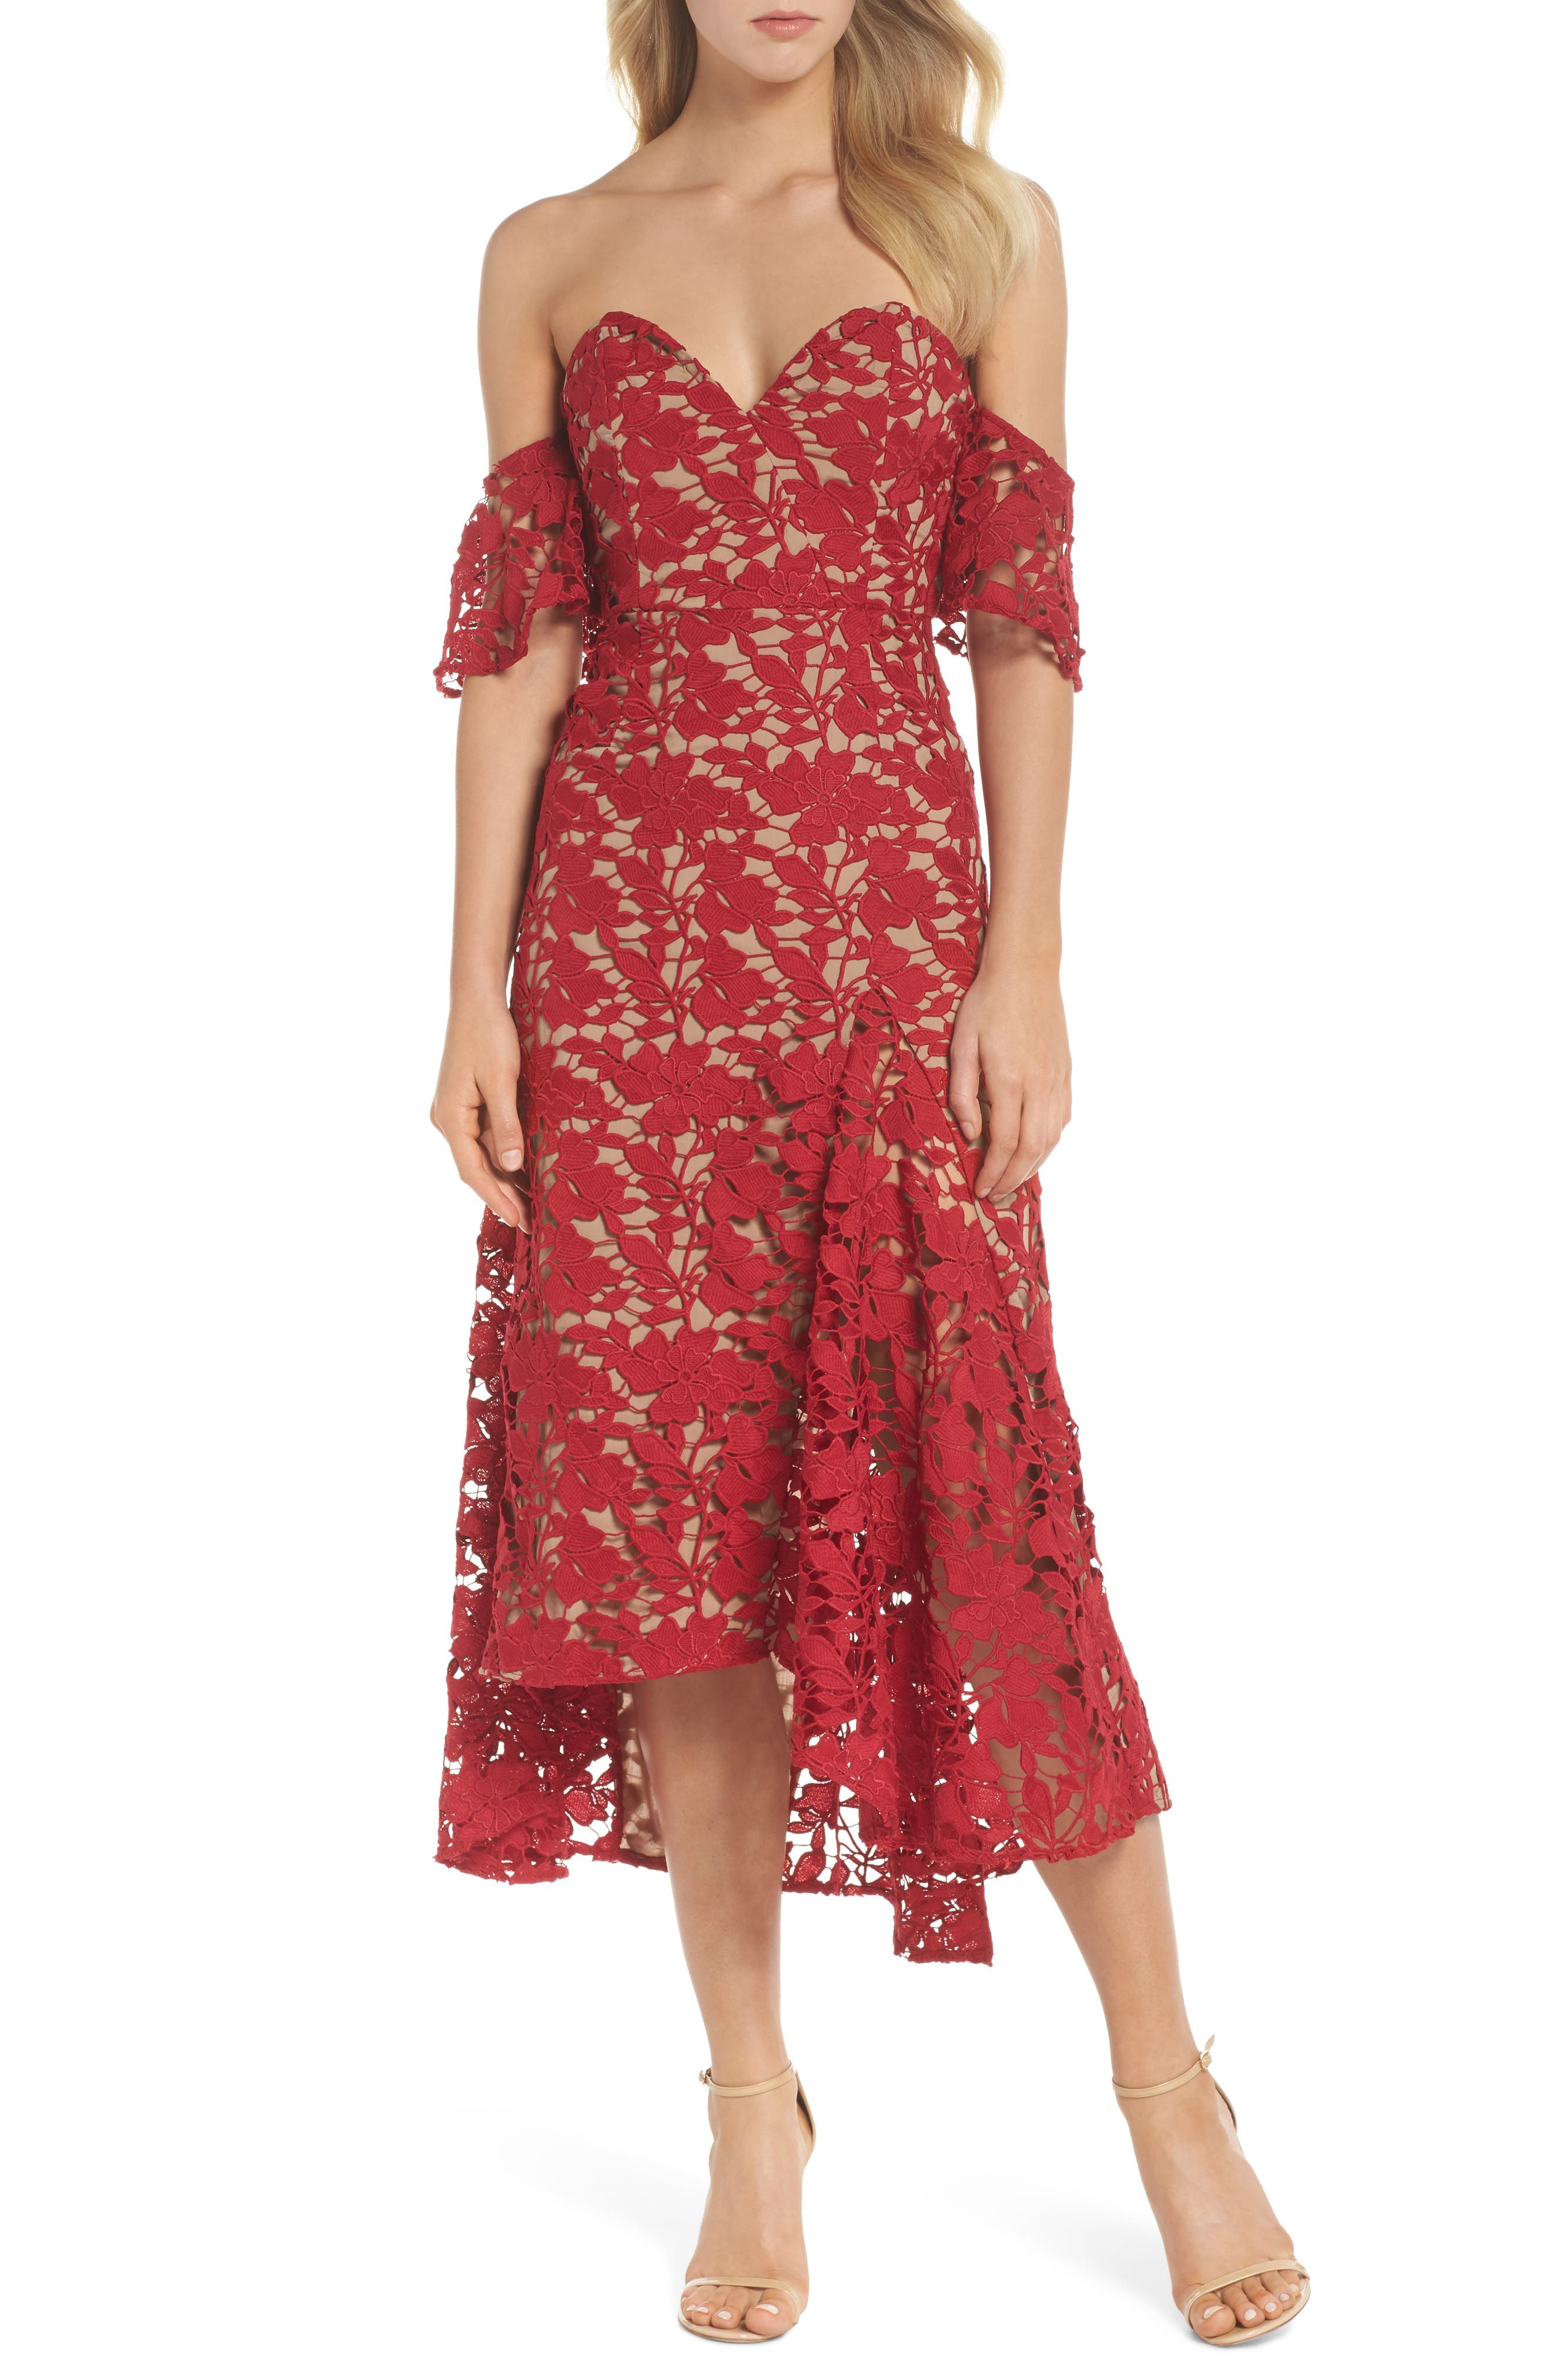 Scarlett Off the Shoulder Lace Dress,                         Main,                         color, Red